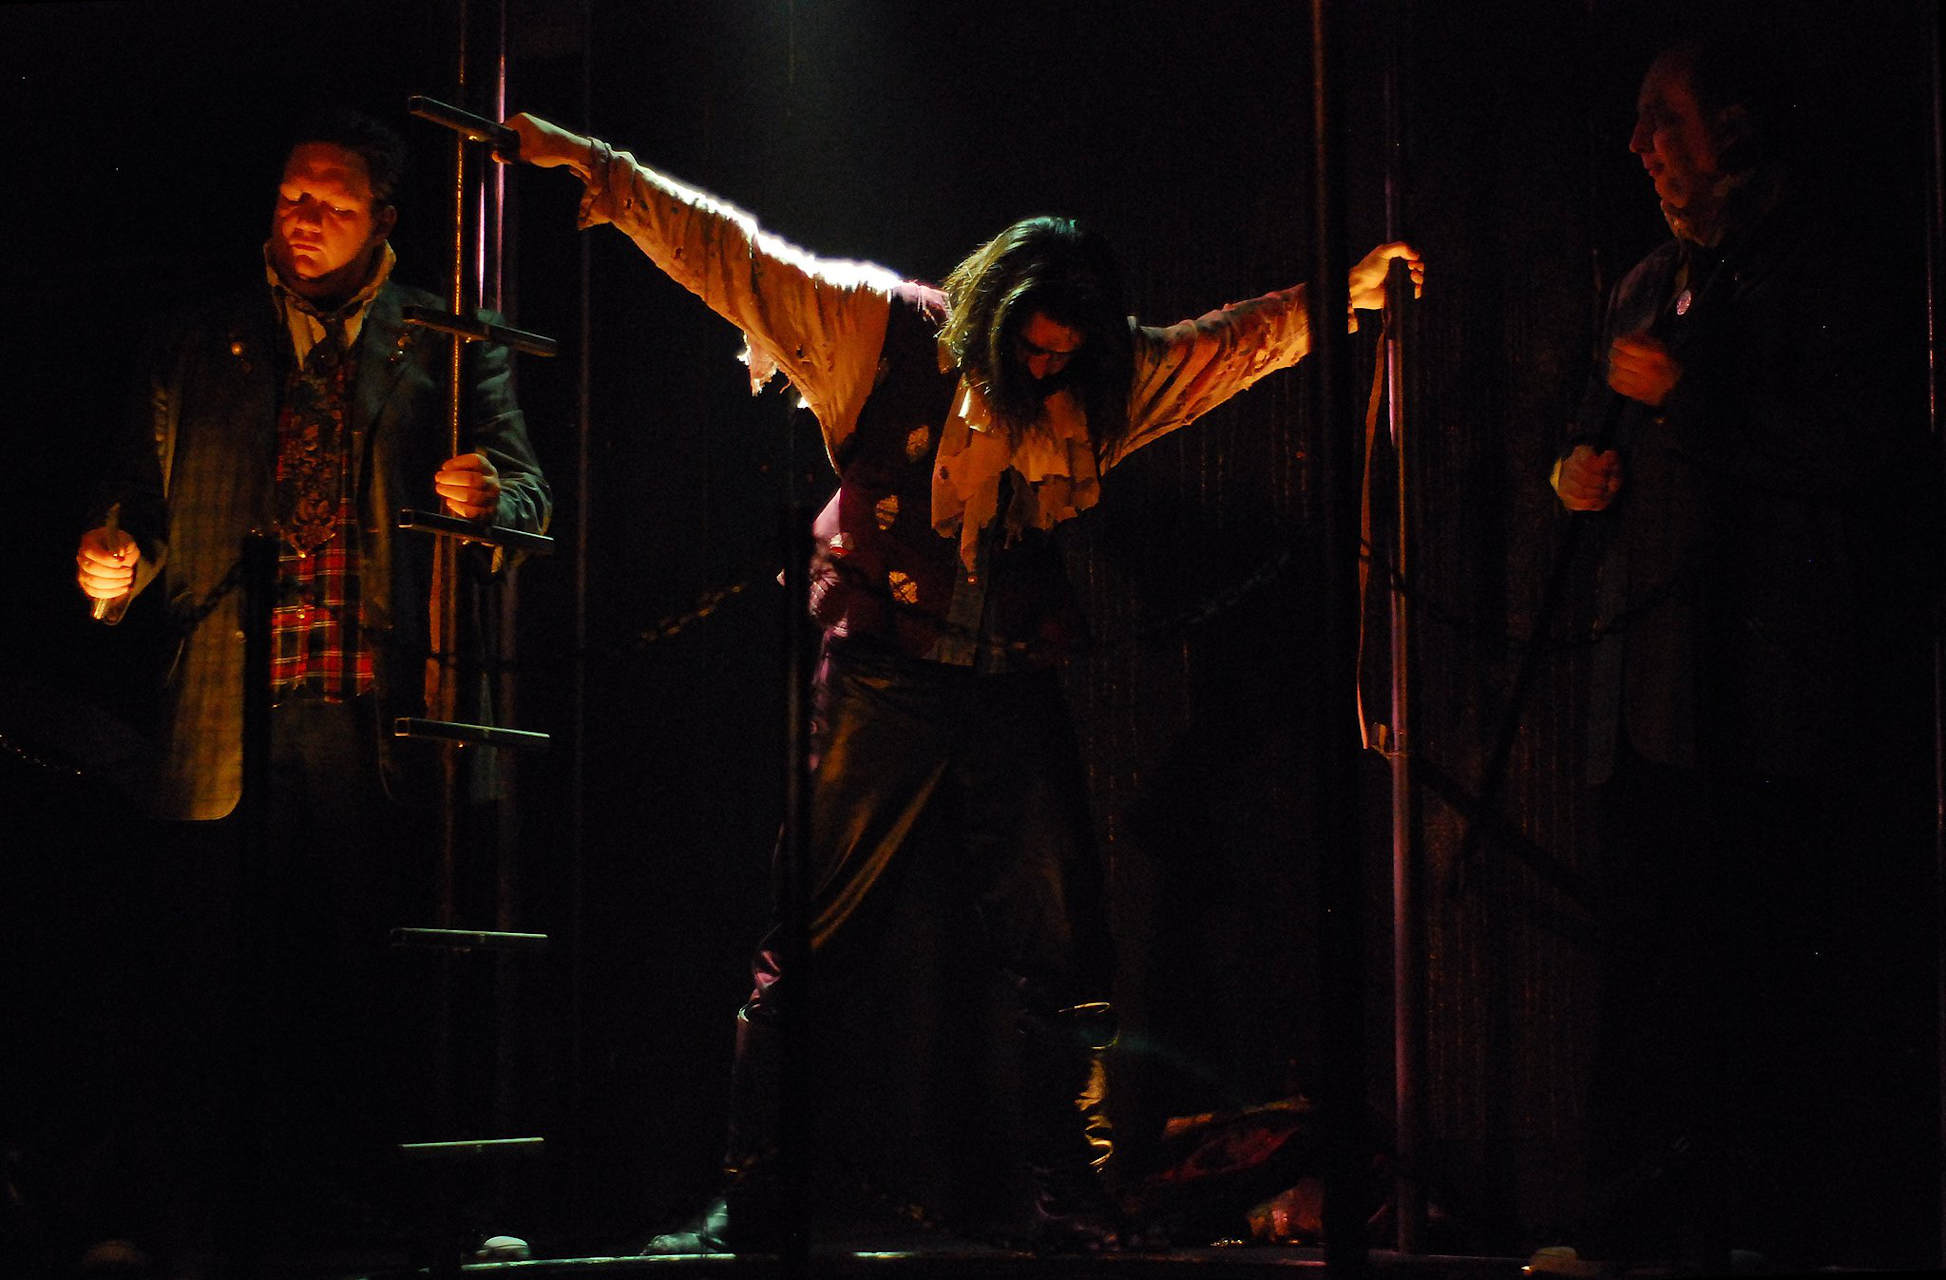 NEVERWHERE (Lifeline Theatre, 2010 - photo by Paul Metreyeon)